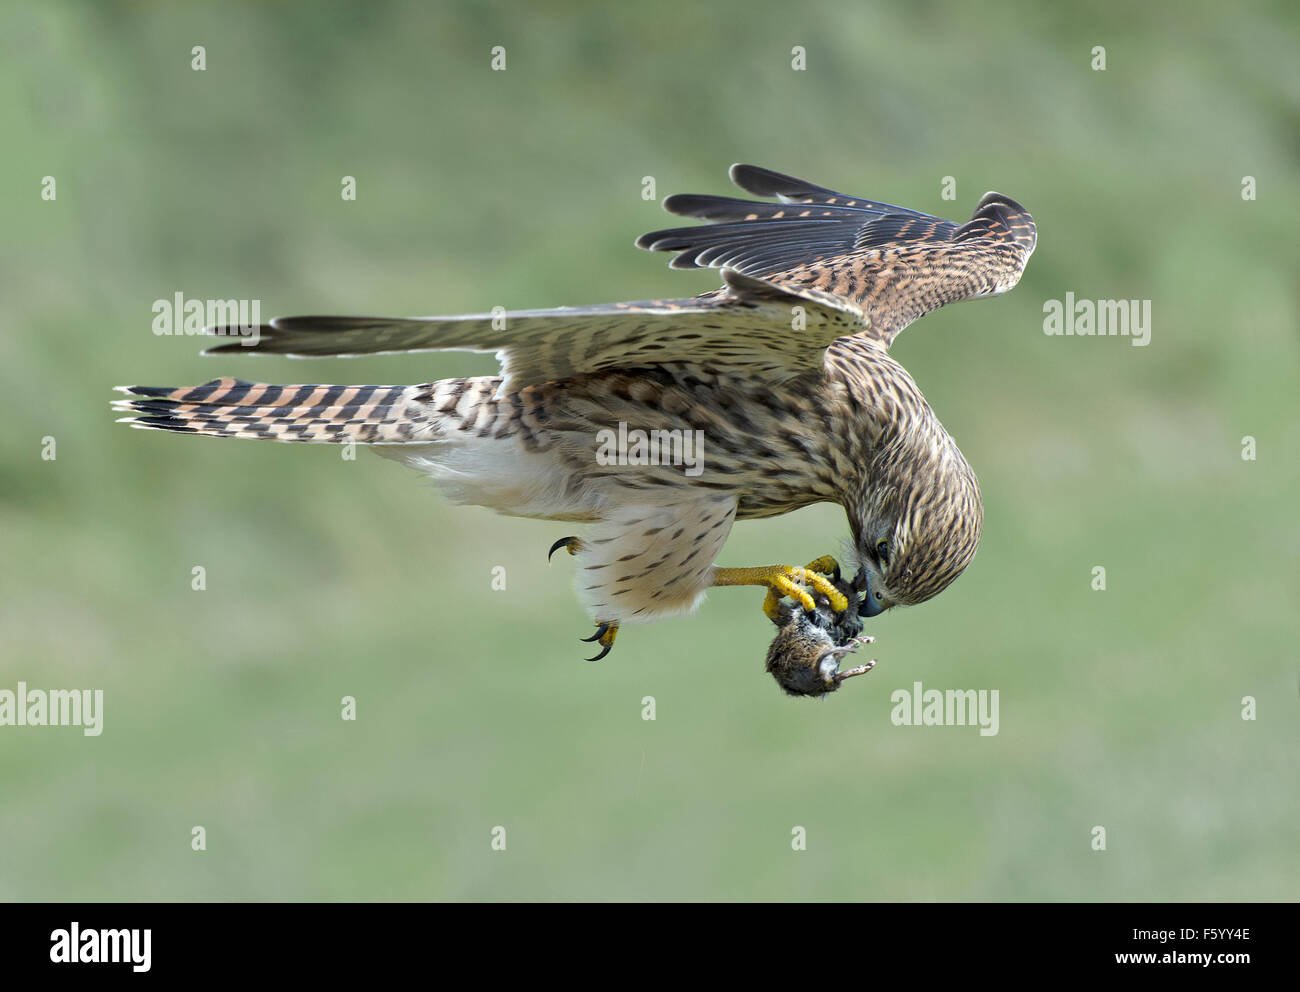 Side view of wild flying Kestrel biting into a vole held in its claw - Stock Image